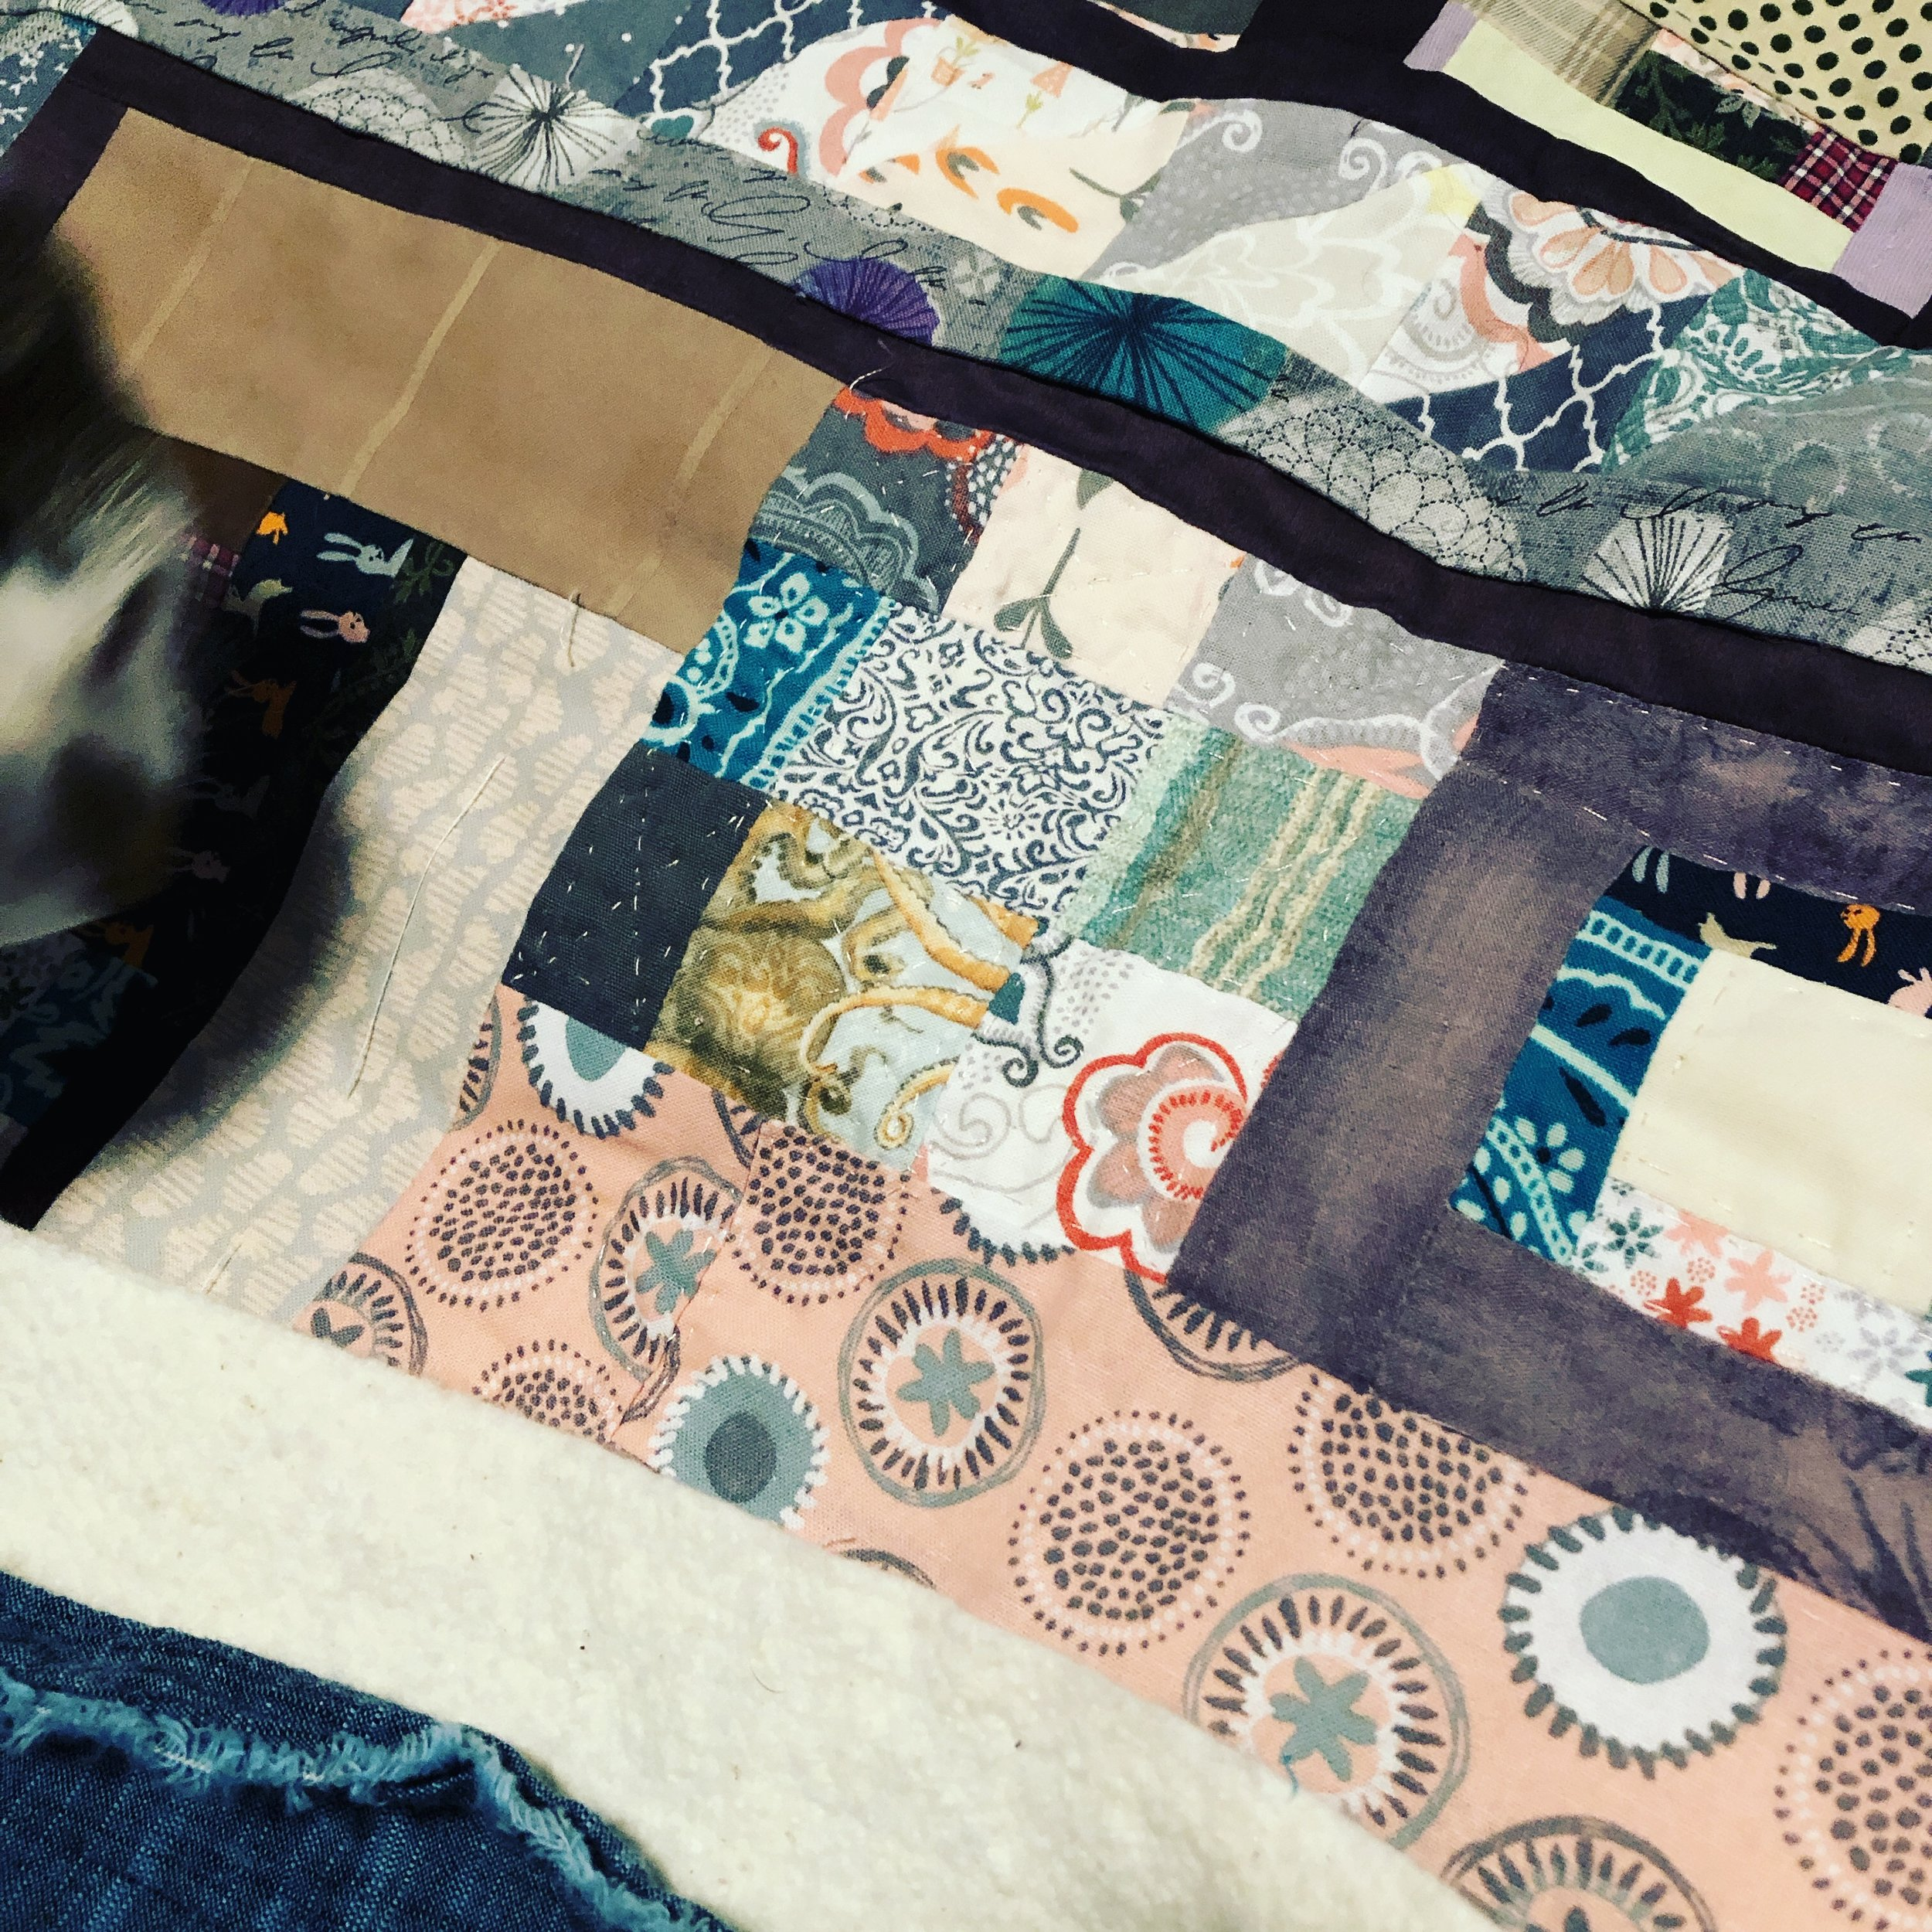 [Image description: a close-up of the same quilt top, now assembled with batting and backing, showing some hand-stitched quilting lines in a 9-patch block and a log cabin block. The face of a white and gray domestic short hair cat is just visible in the upper left.]